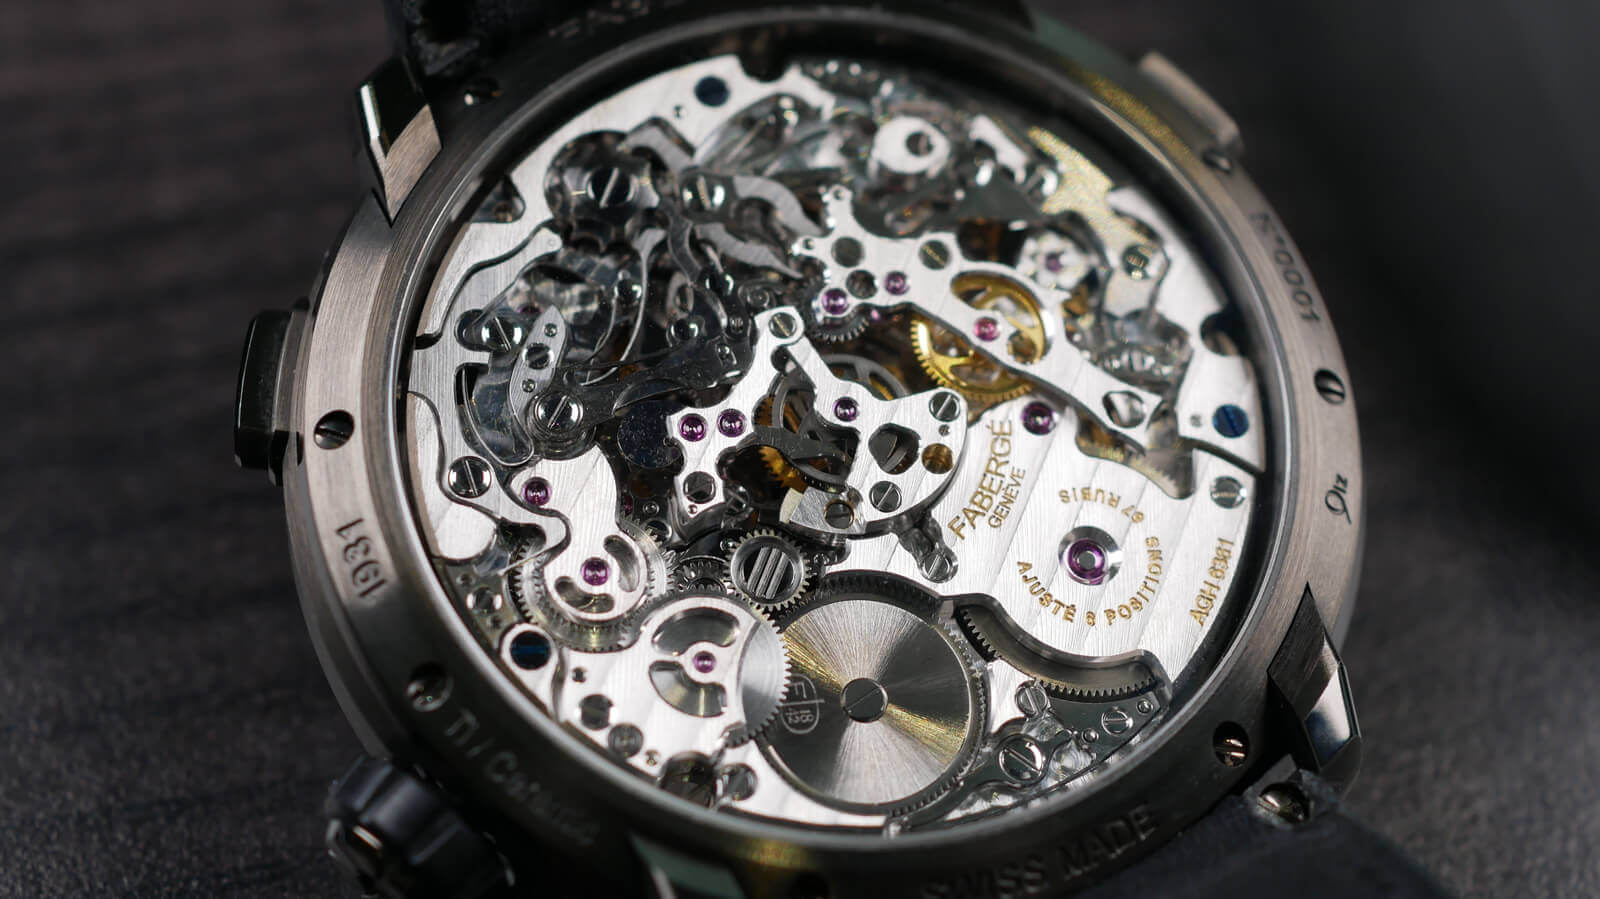 Faberge Visionnaire Chronograph - chronograph with column wheel and horizontal coupling